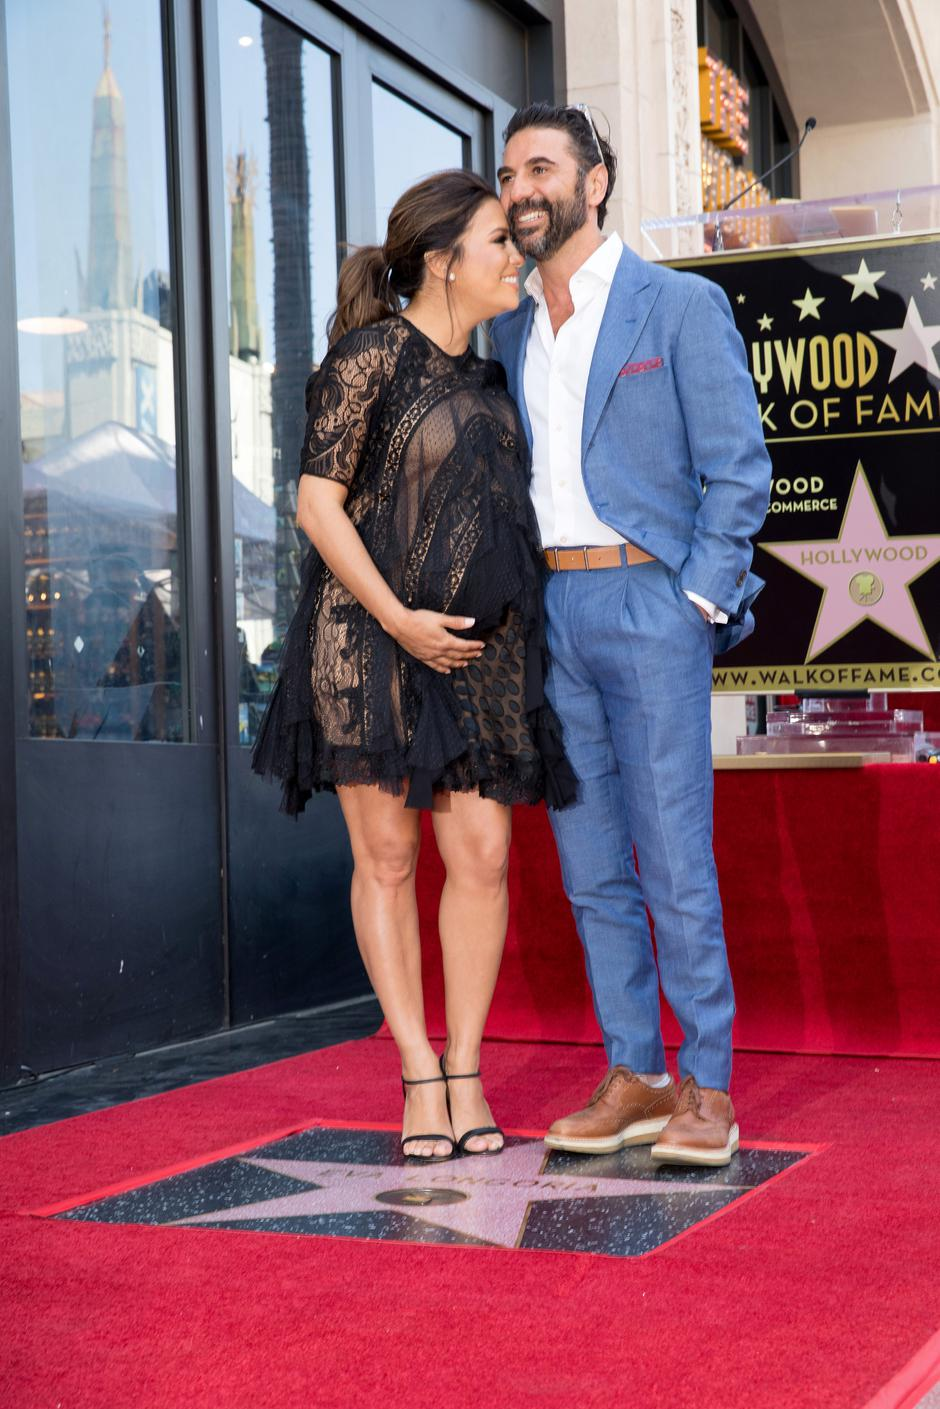 Eva Longoria and her husband Jose 'Pepe' Baston pose on the Hollywood Walk of Fame in Los Angeles | Autor: MONICA ALMEIDA/REUTERS/PIXSELL/REUTERS/PIXSELL